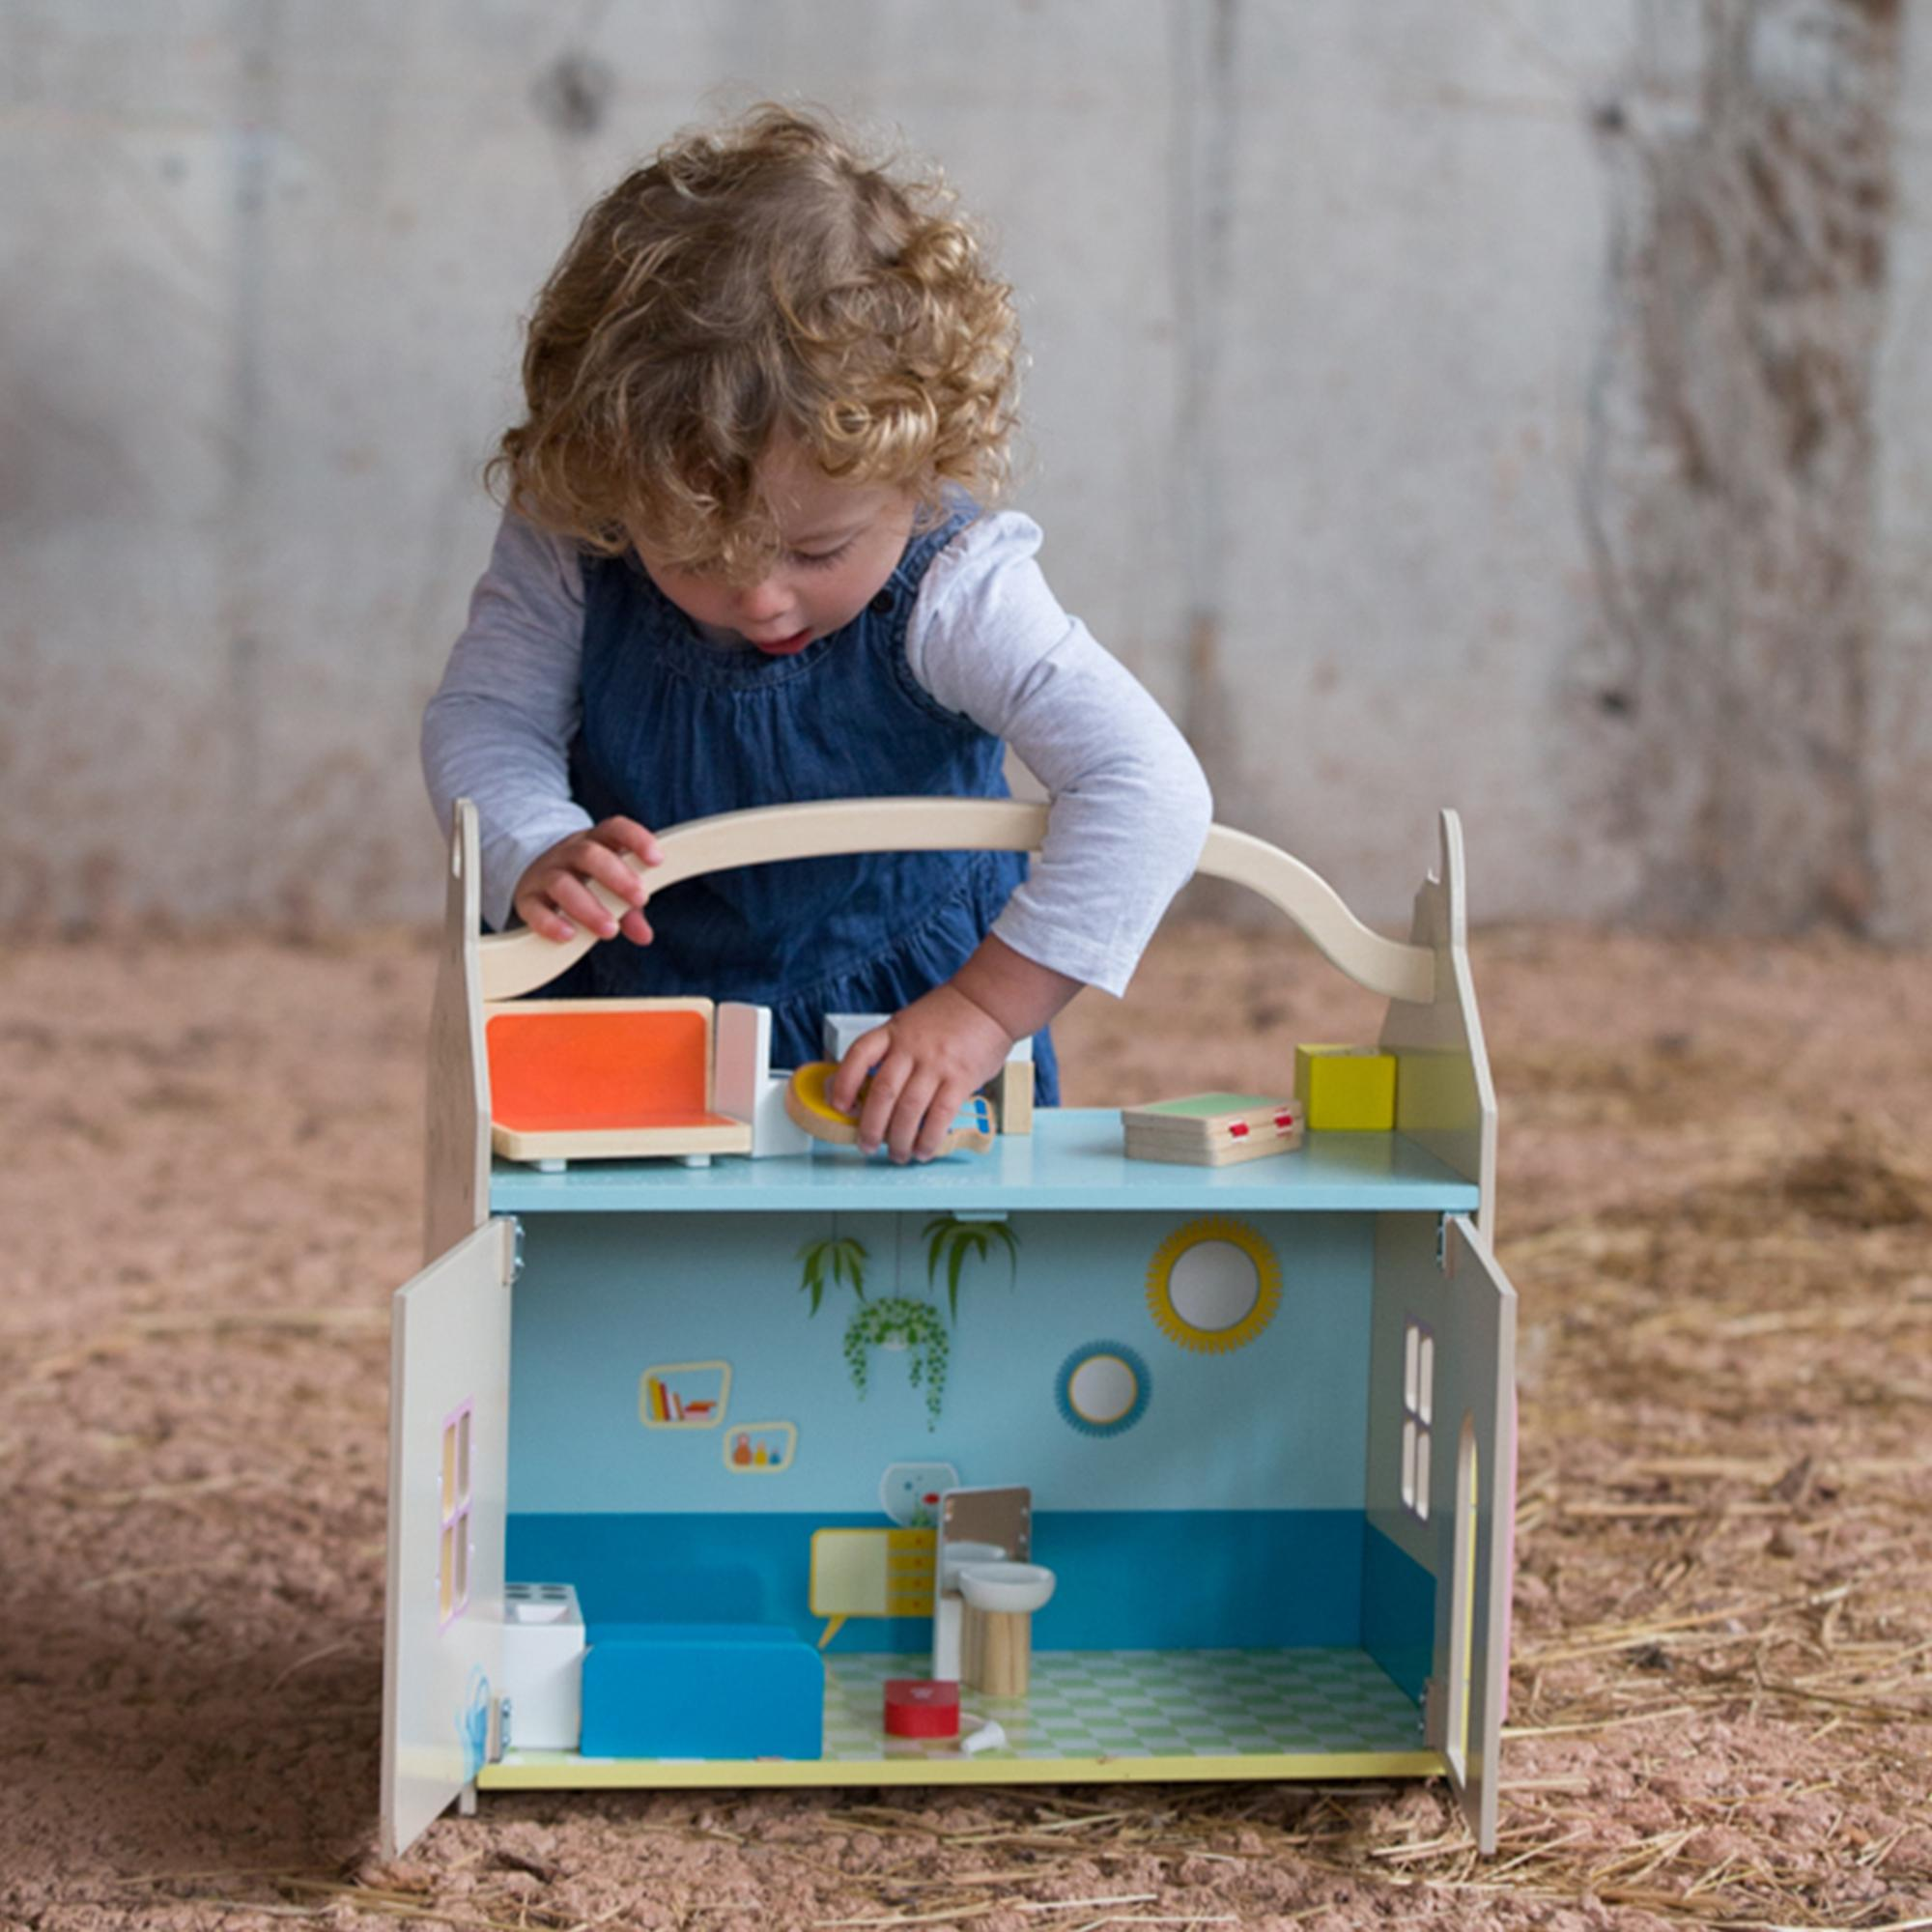 Classic World - Wooden Modern Dream House, Doll's House with Furniture, Figurines and Garden